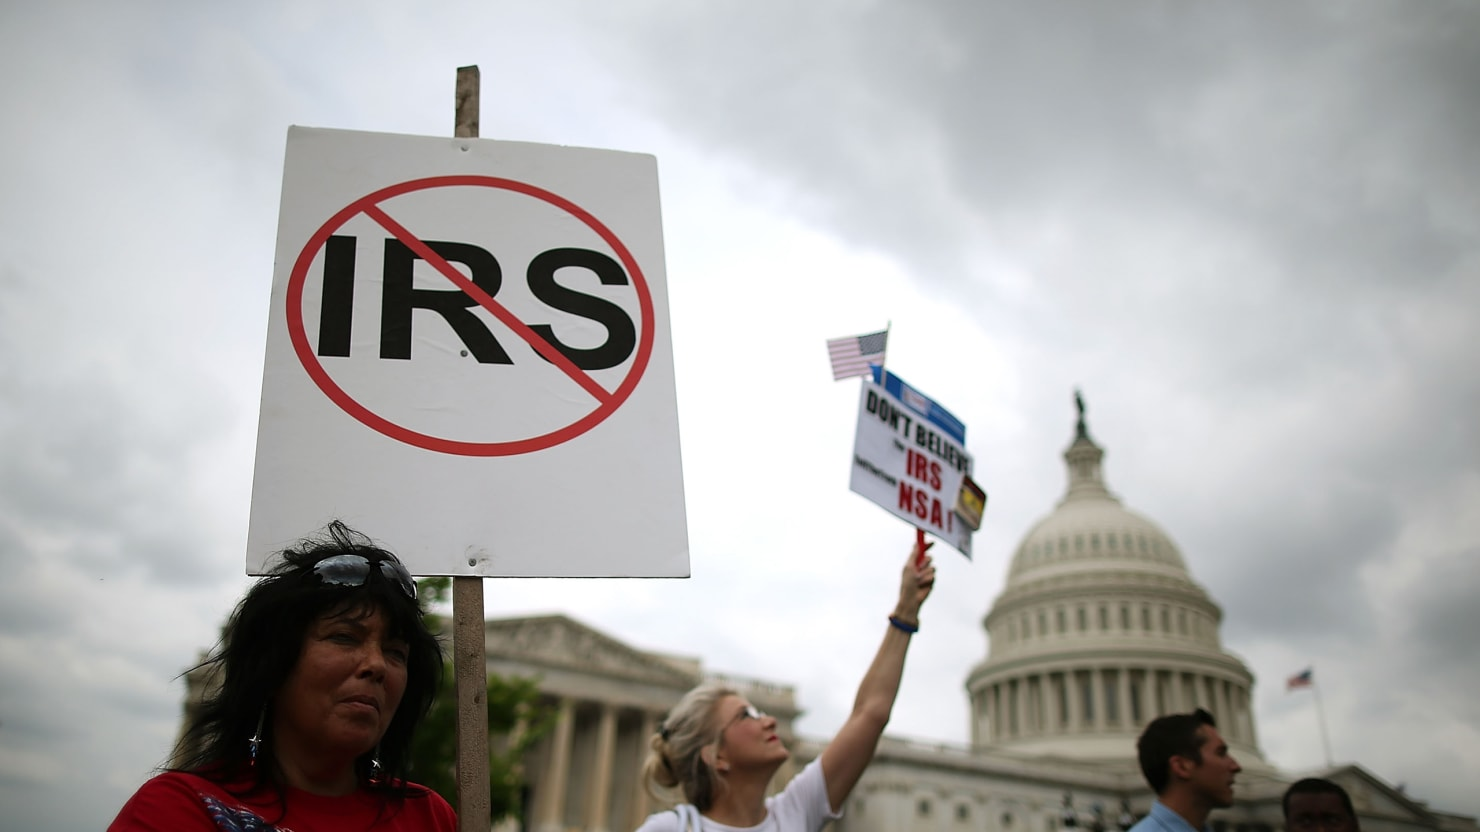 IRS Investigator In Political Crossfire